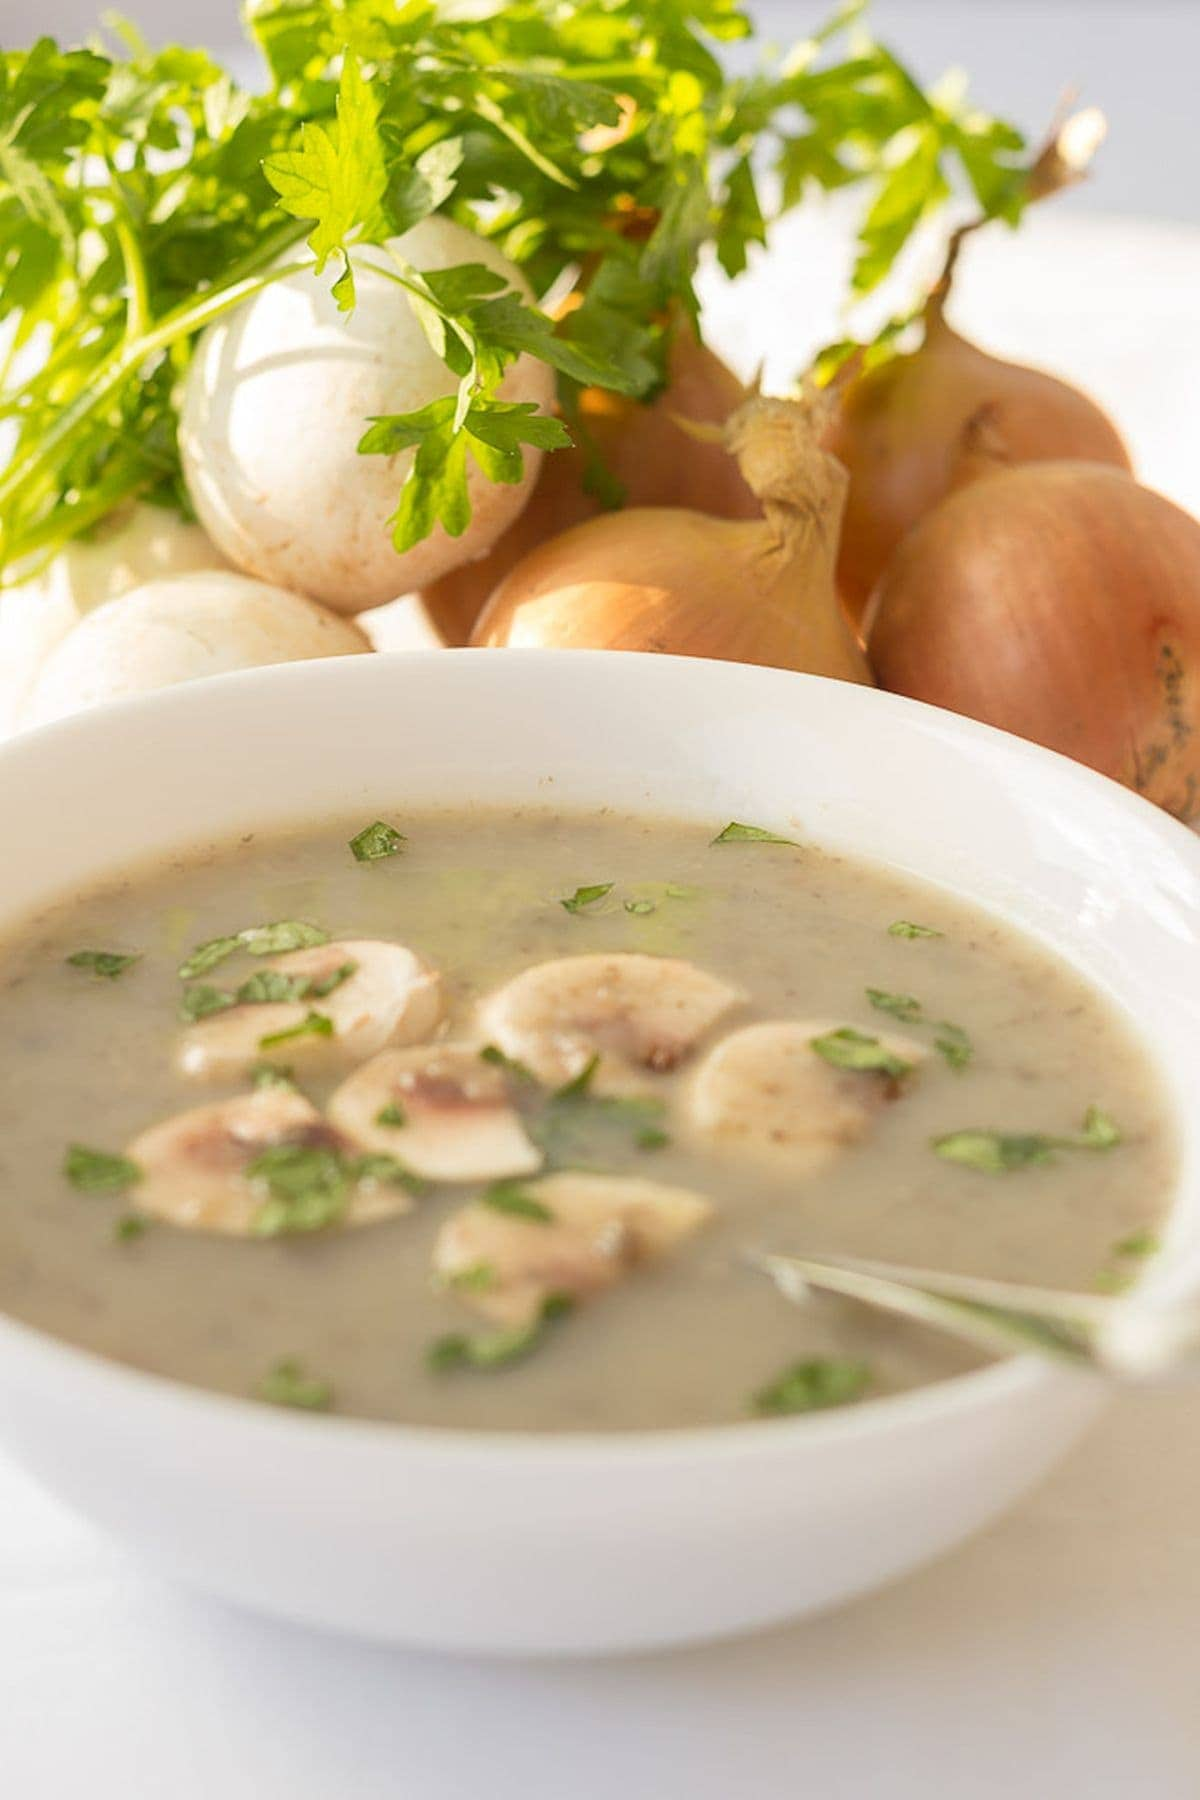 A bowl of creamy mushroom soup without the cream. Garnished with chopped mushroom and parlsey.